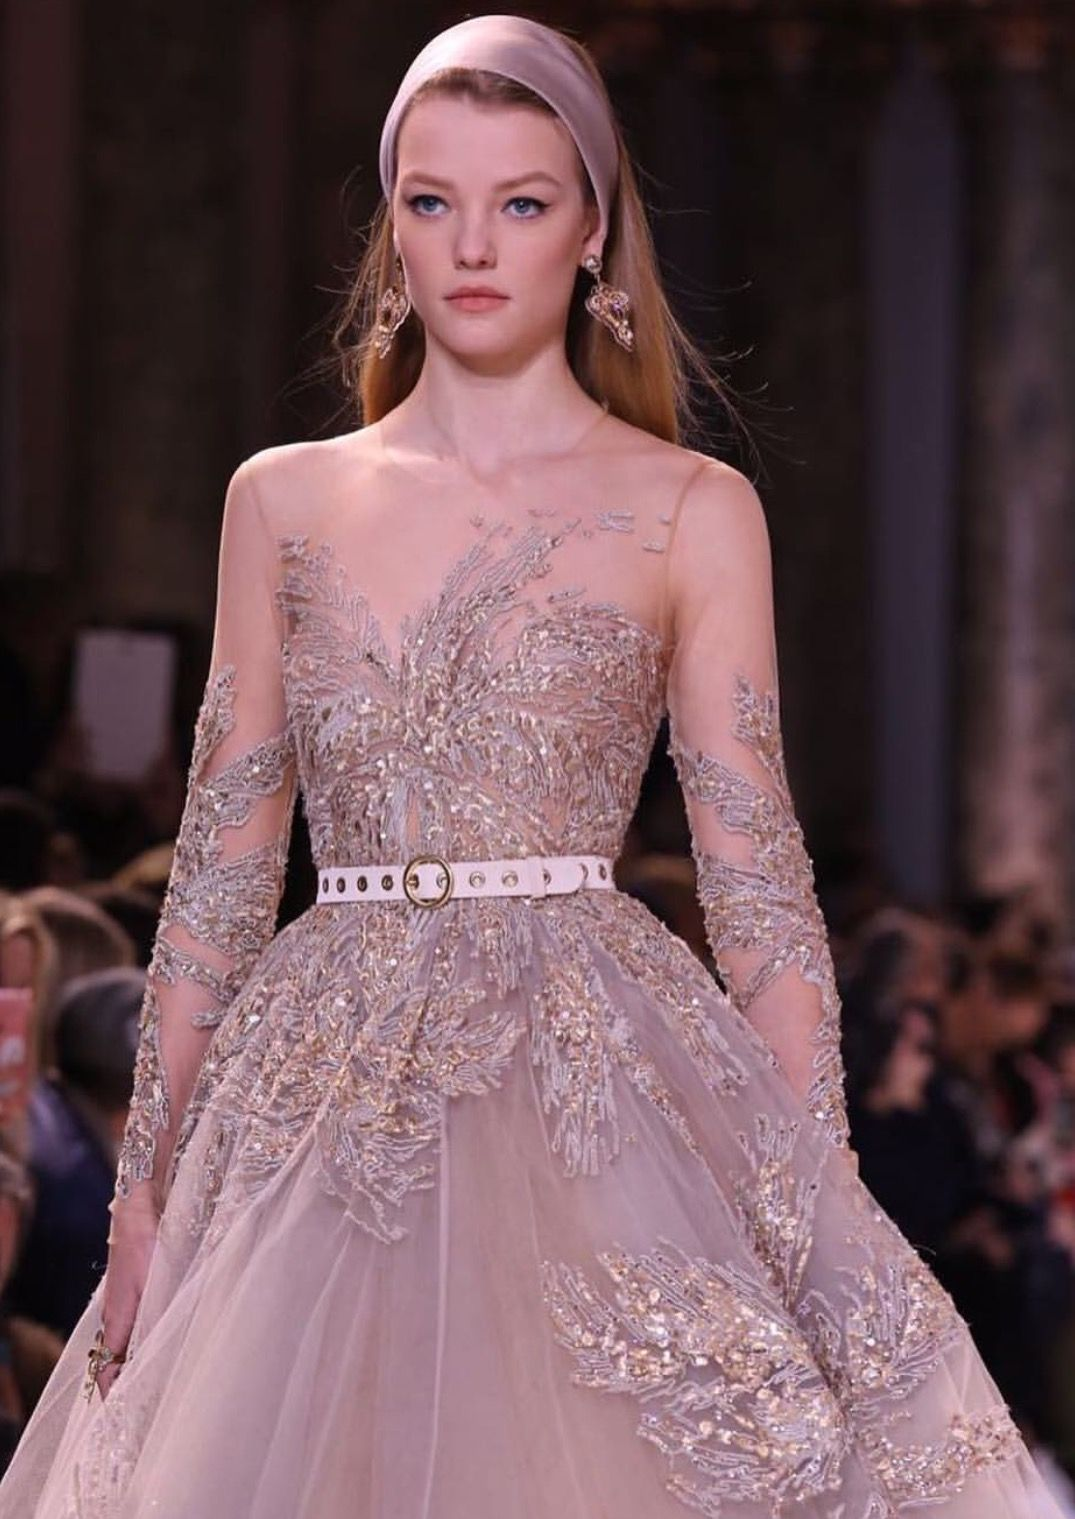 Pin by Liza Dinata on DETAIL ELIE SAAB | Pinterest | Fashion details ...